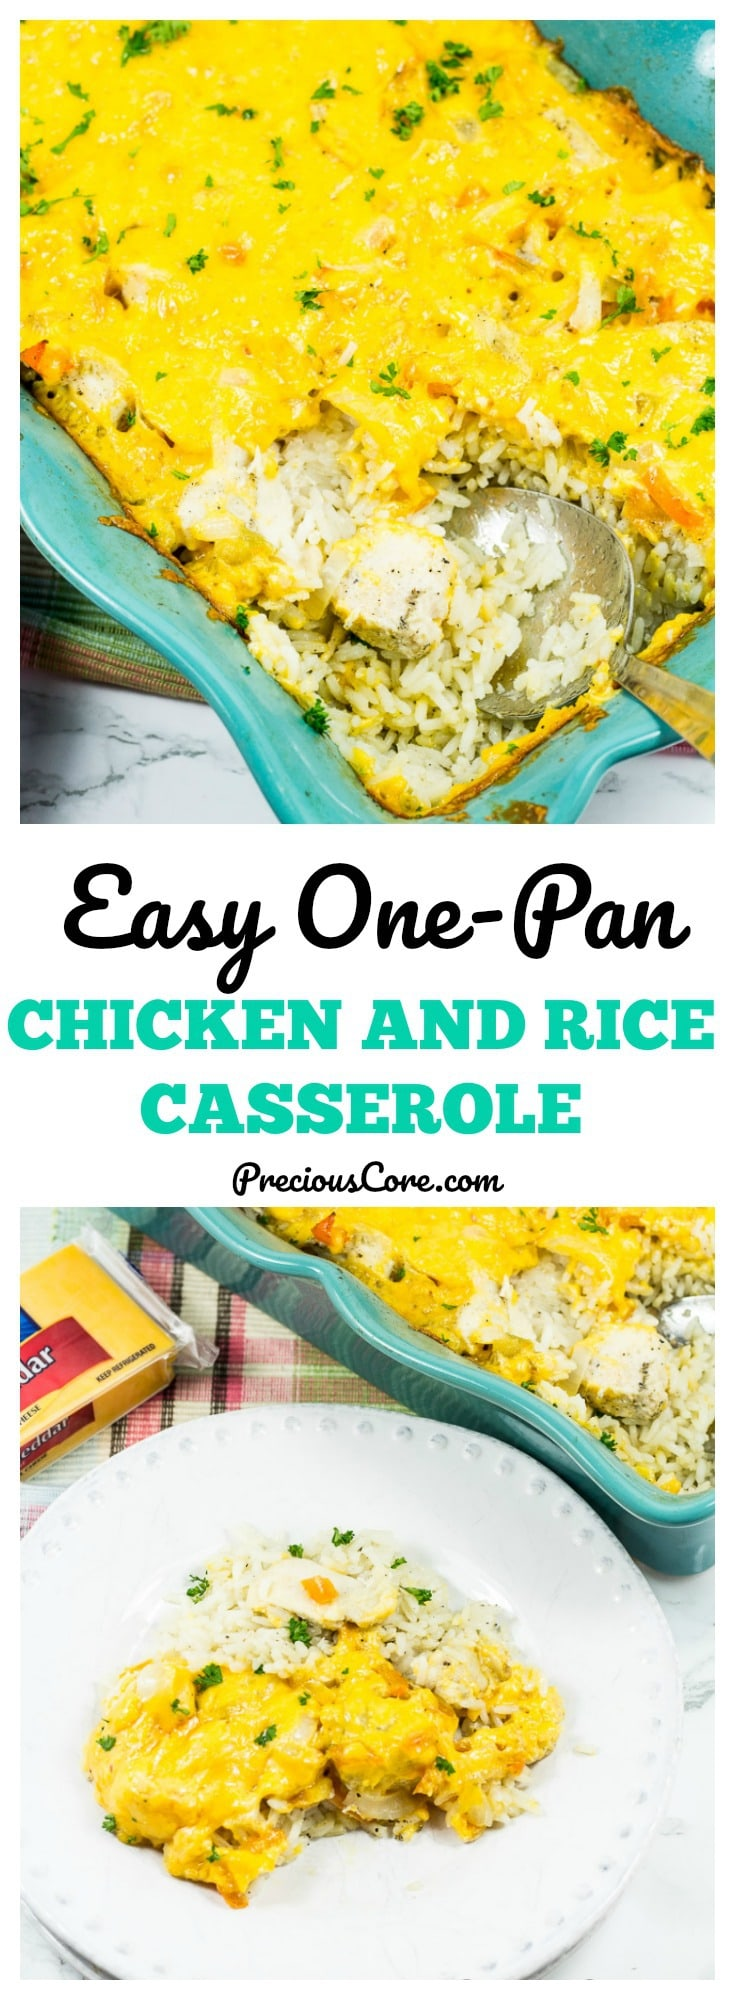 This baked chicken and rice casserole is made in one pan with very few ingredients. An easy cheesy dinner the whole family will love! Get the recipe on PreciousCore.com. #AD #CheeseLove #Giveaway